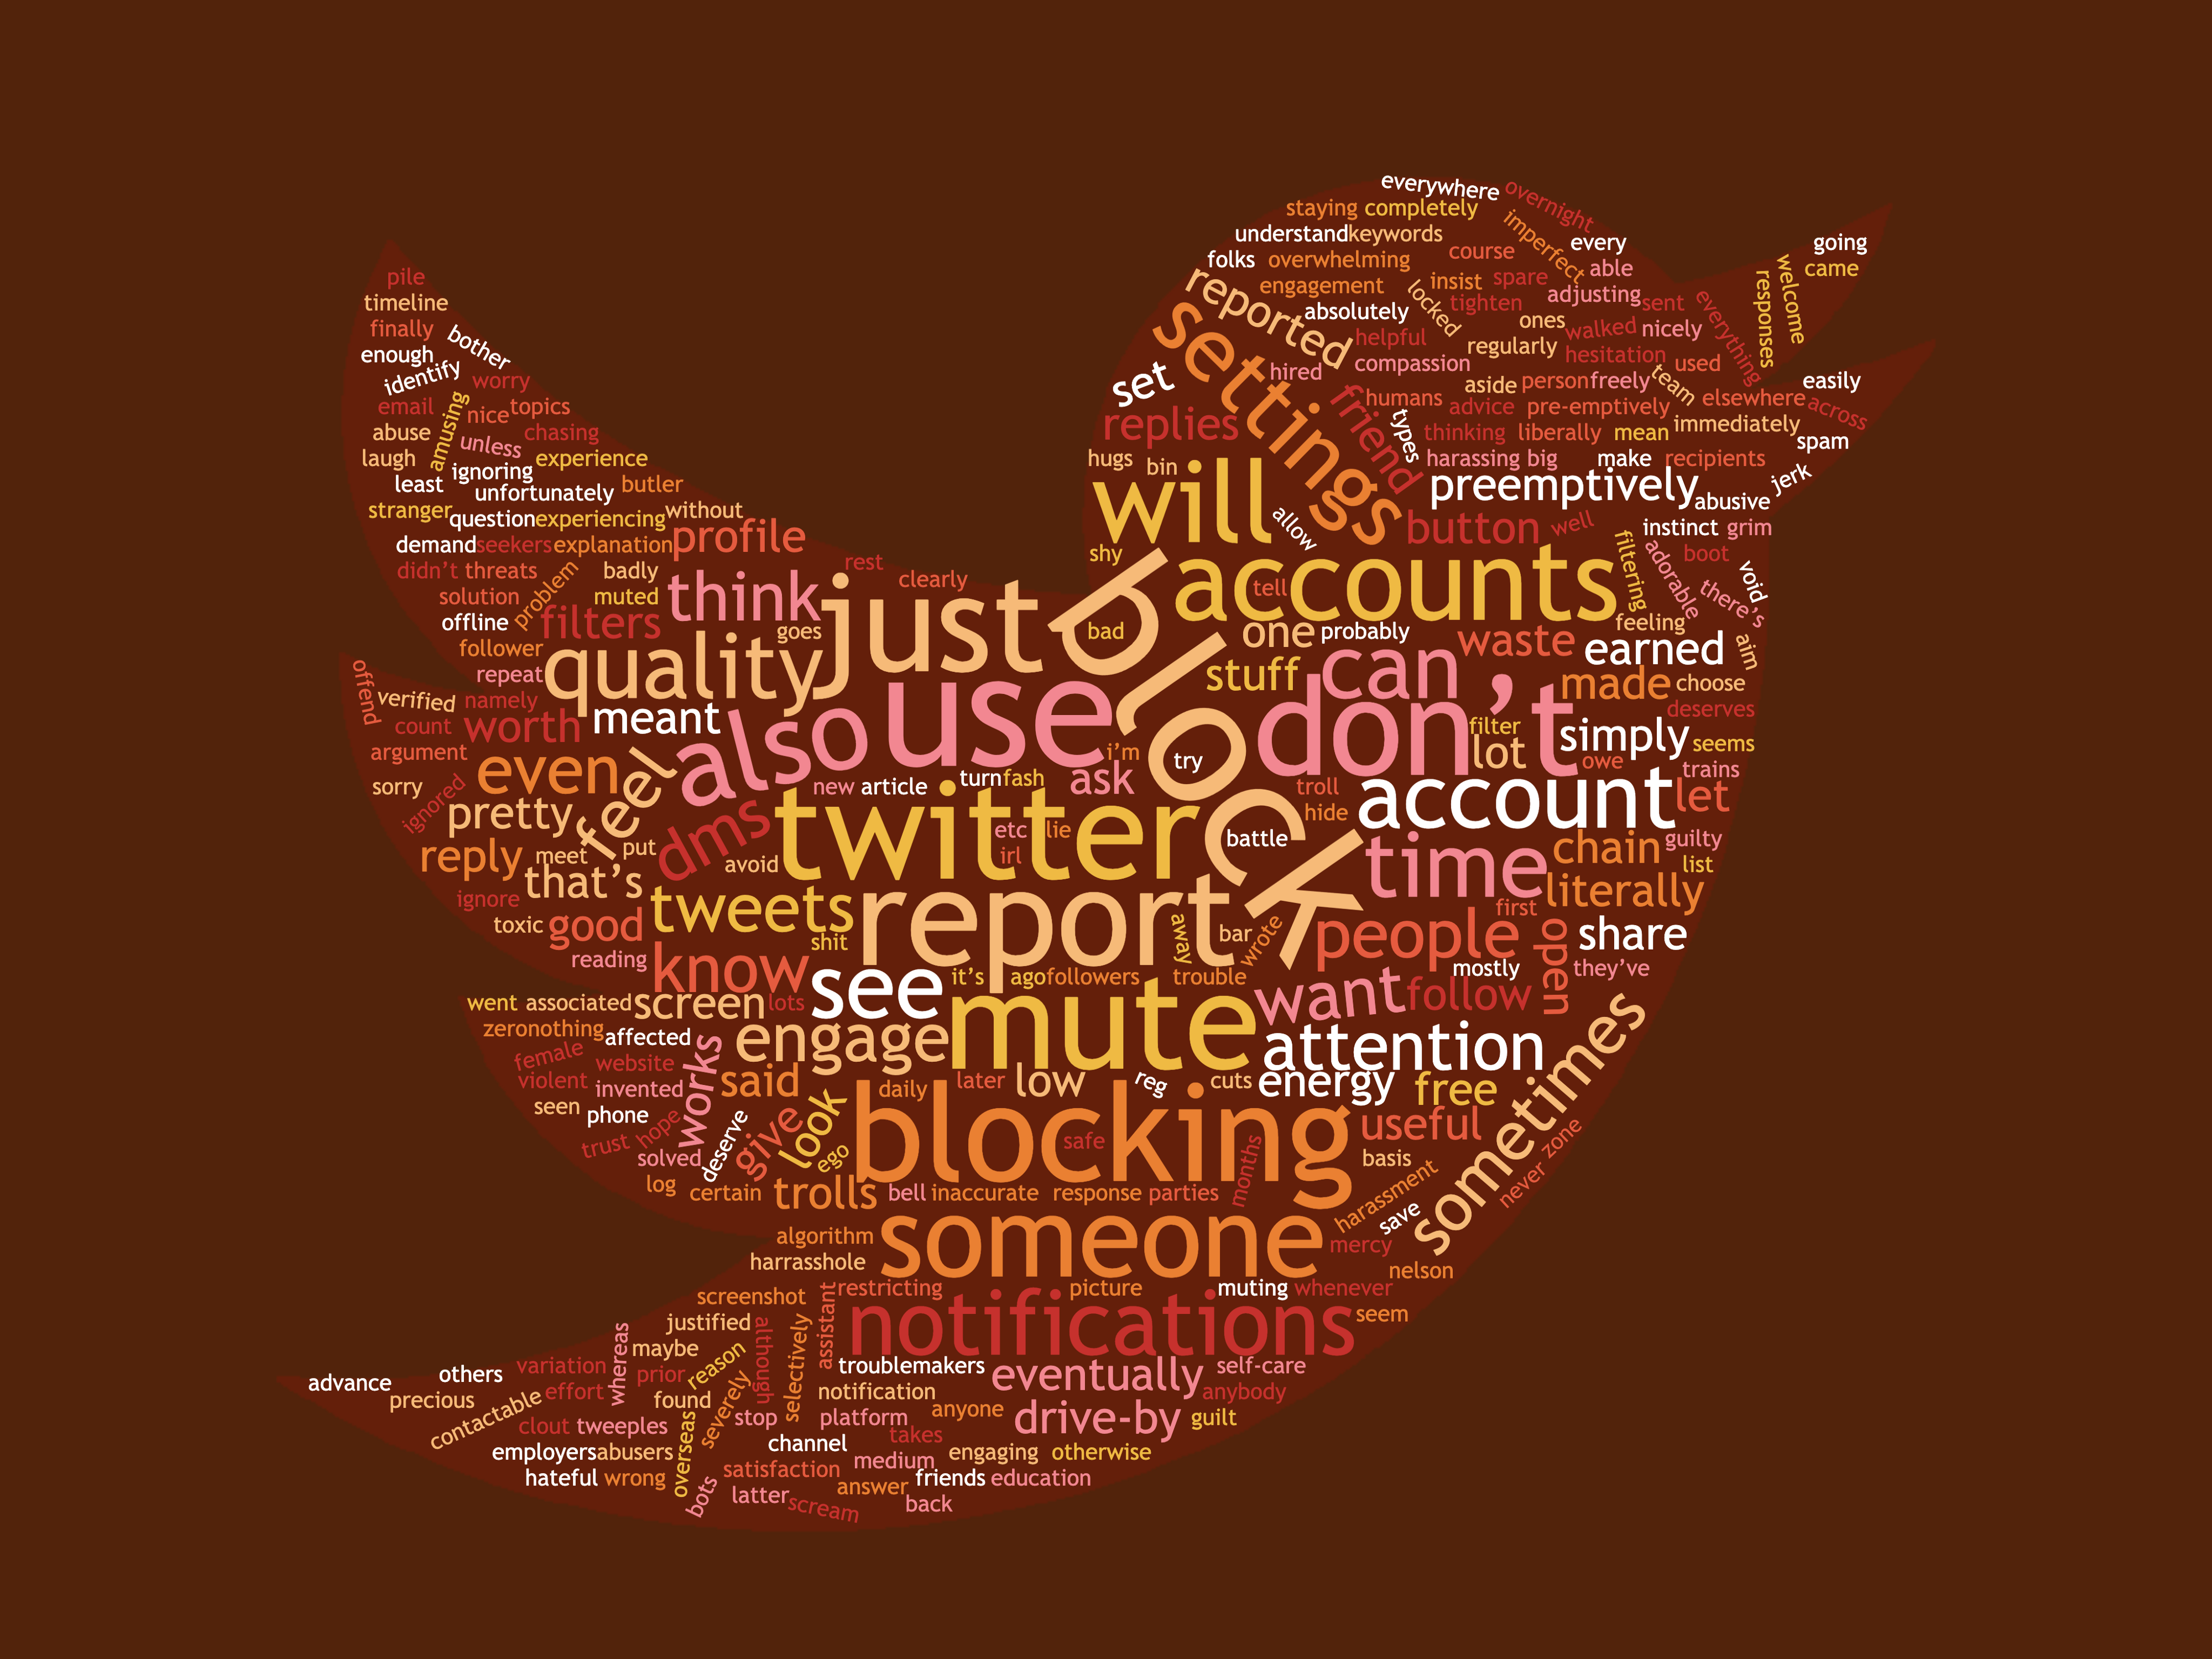 A word cloud in the shape of the Twitter logo. Some of the most prominent words include block, report, and mute.